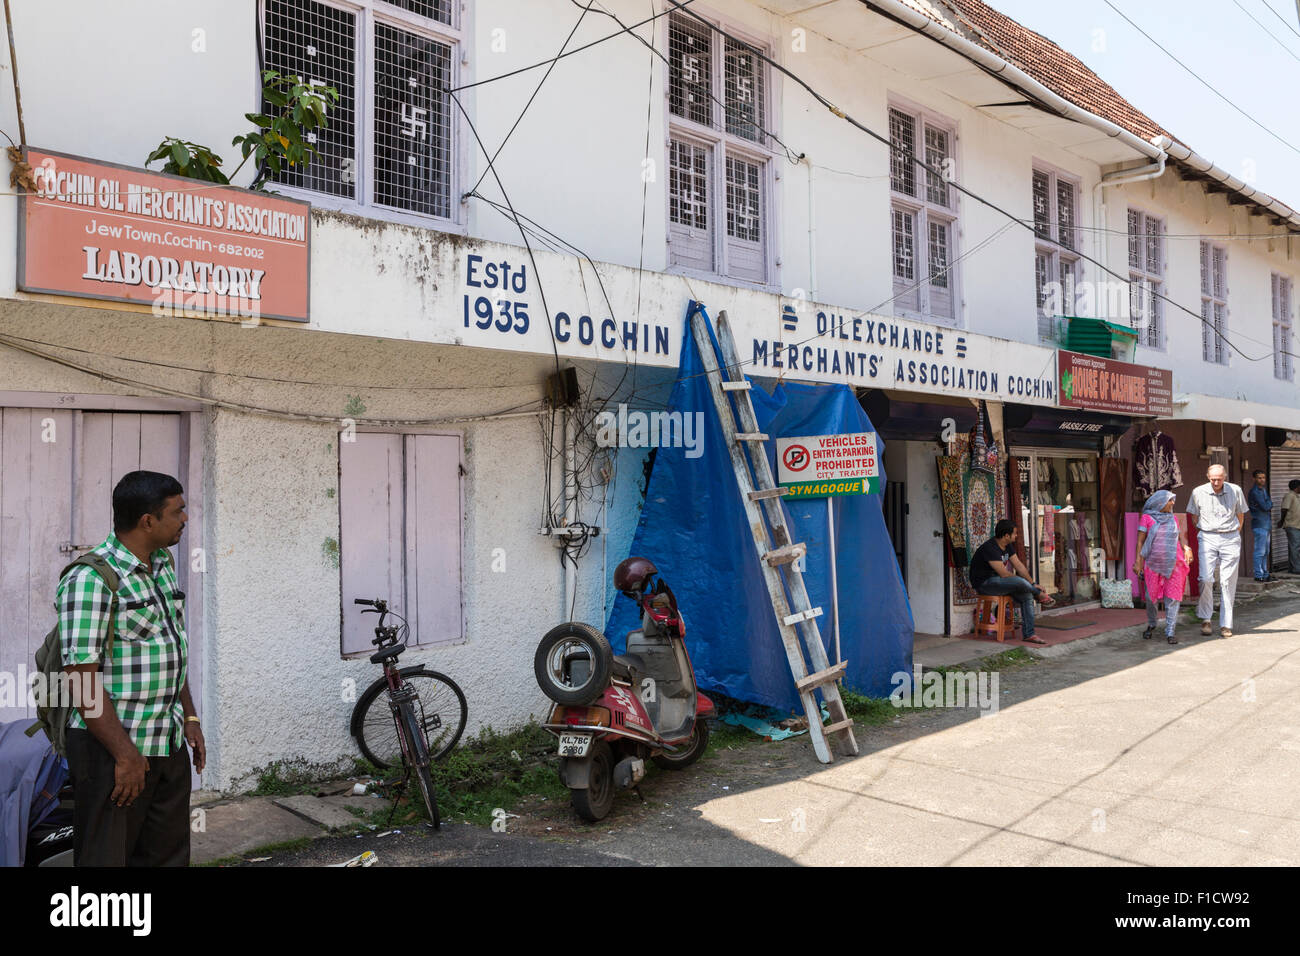 Warehouse building and pedestrians in Jew Town, Kochi, India. Note the Hindu swastikas decorating the window grilles - Stock Image